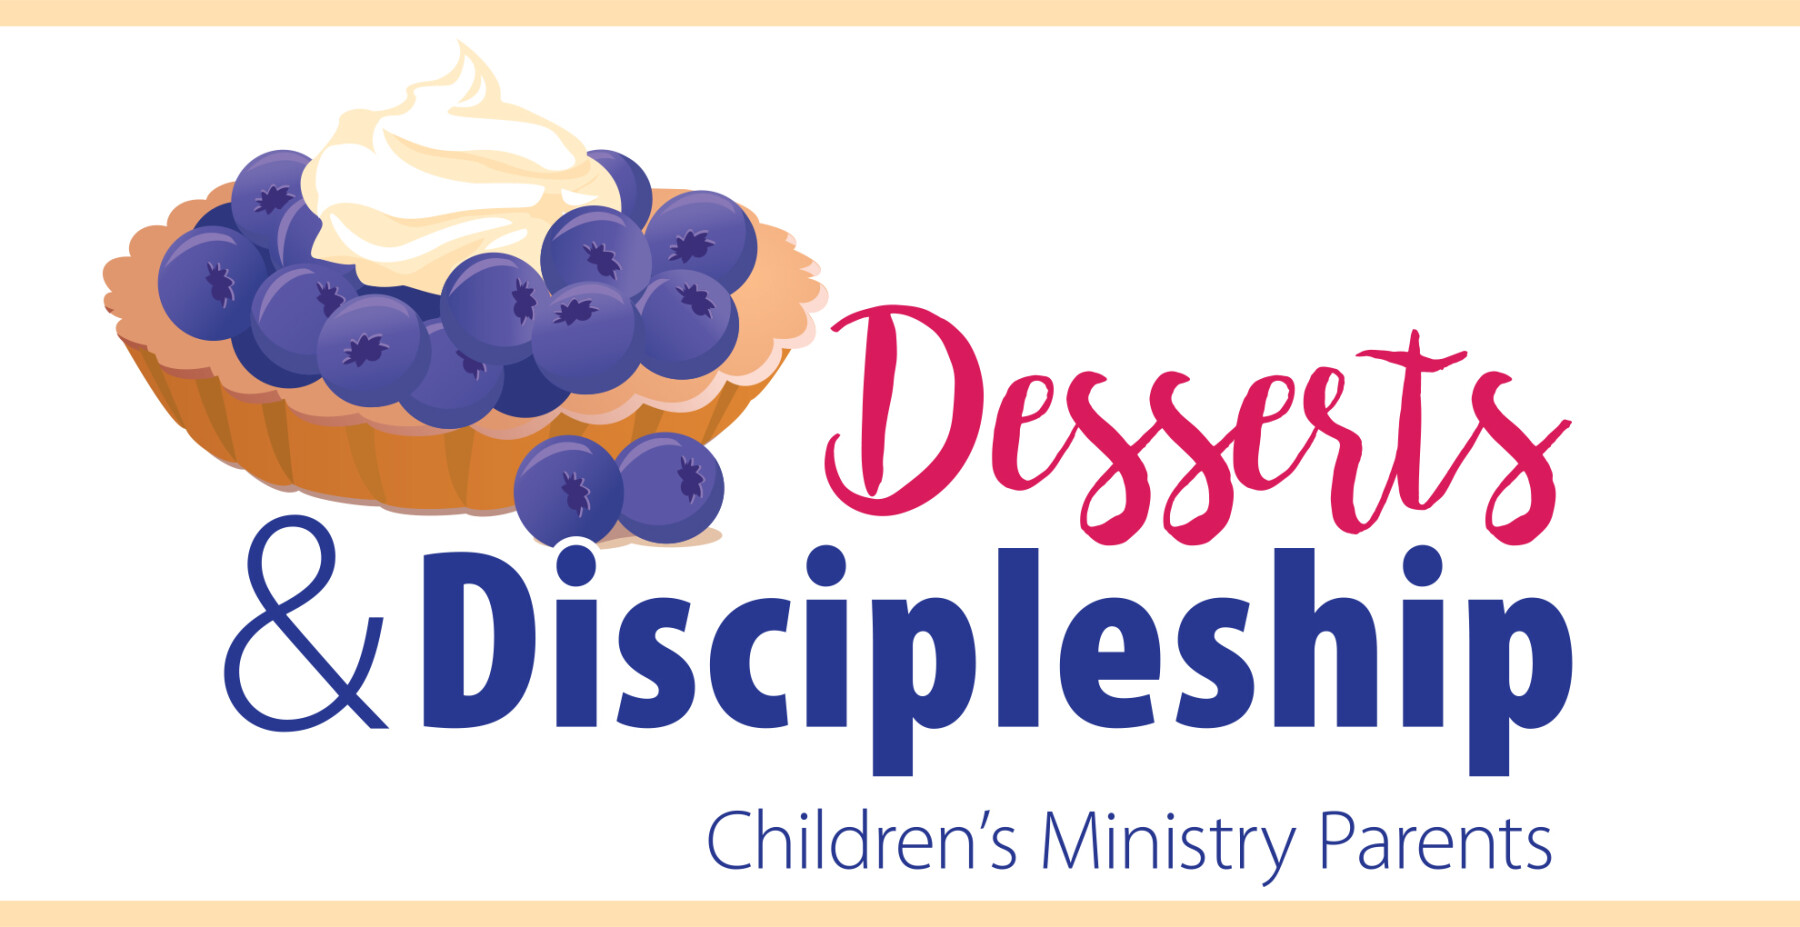 Desserts and Discipleship